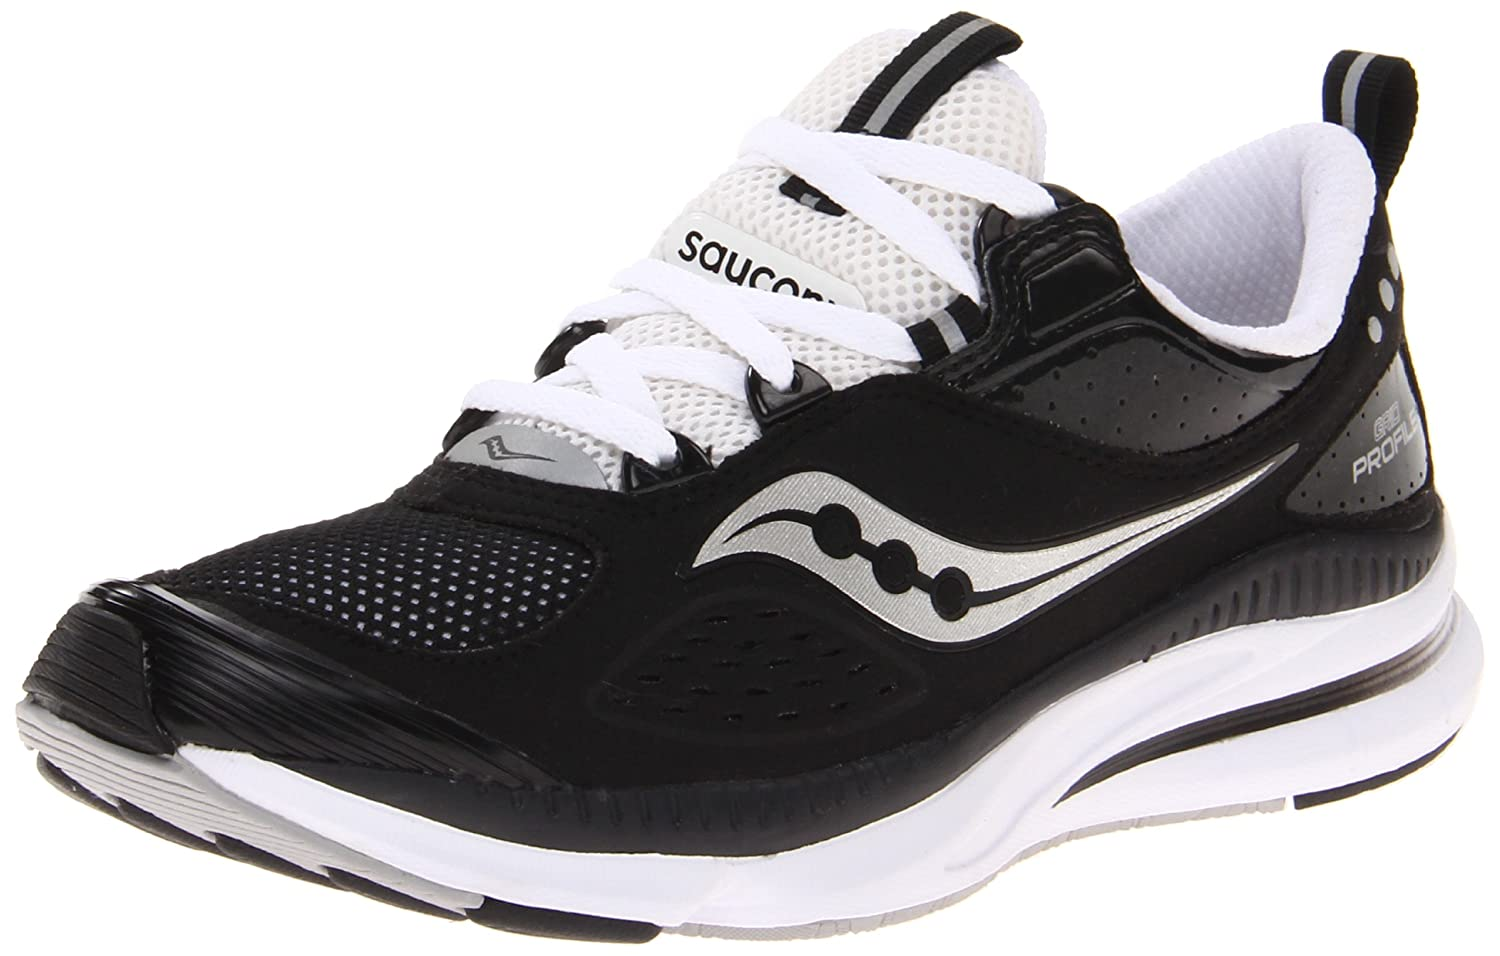 8717e086f2892 Saucony Grid Profile Men's Shoes Black/White